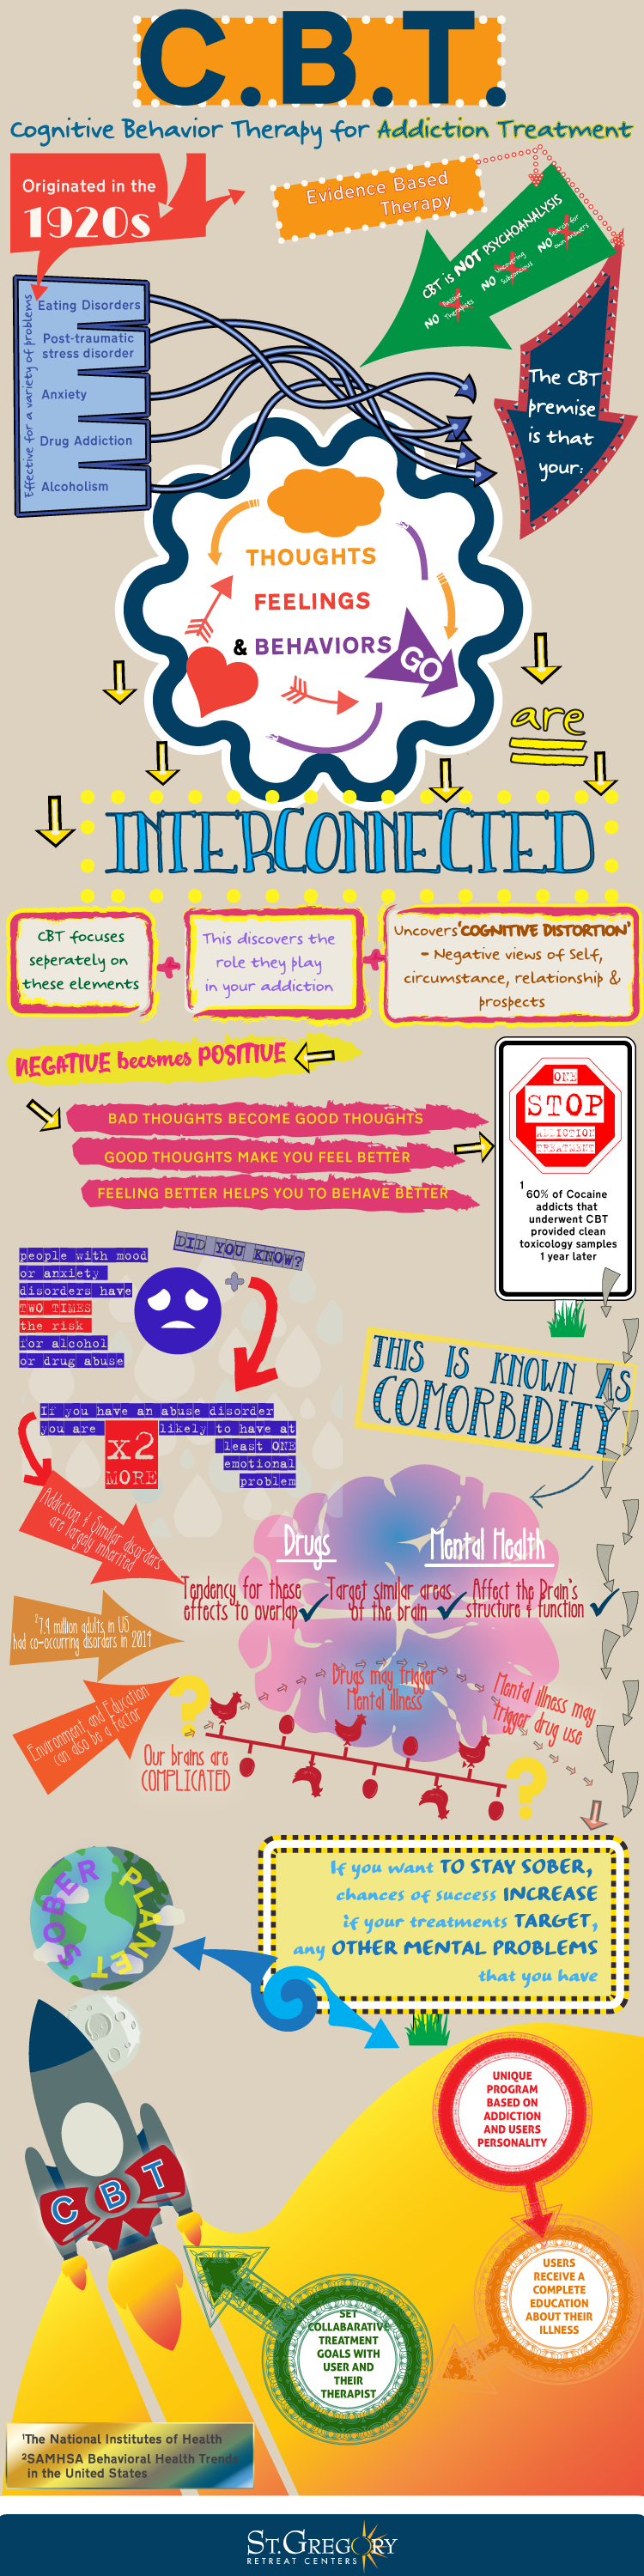 collage infographic about CBT